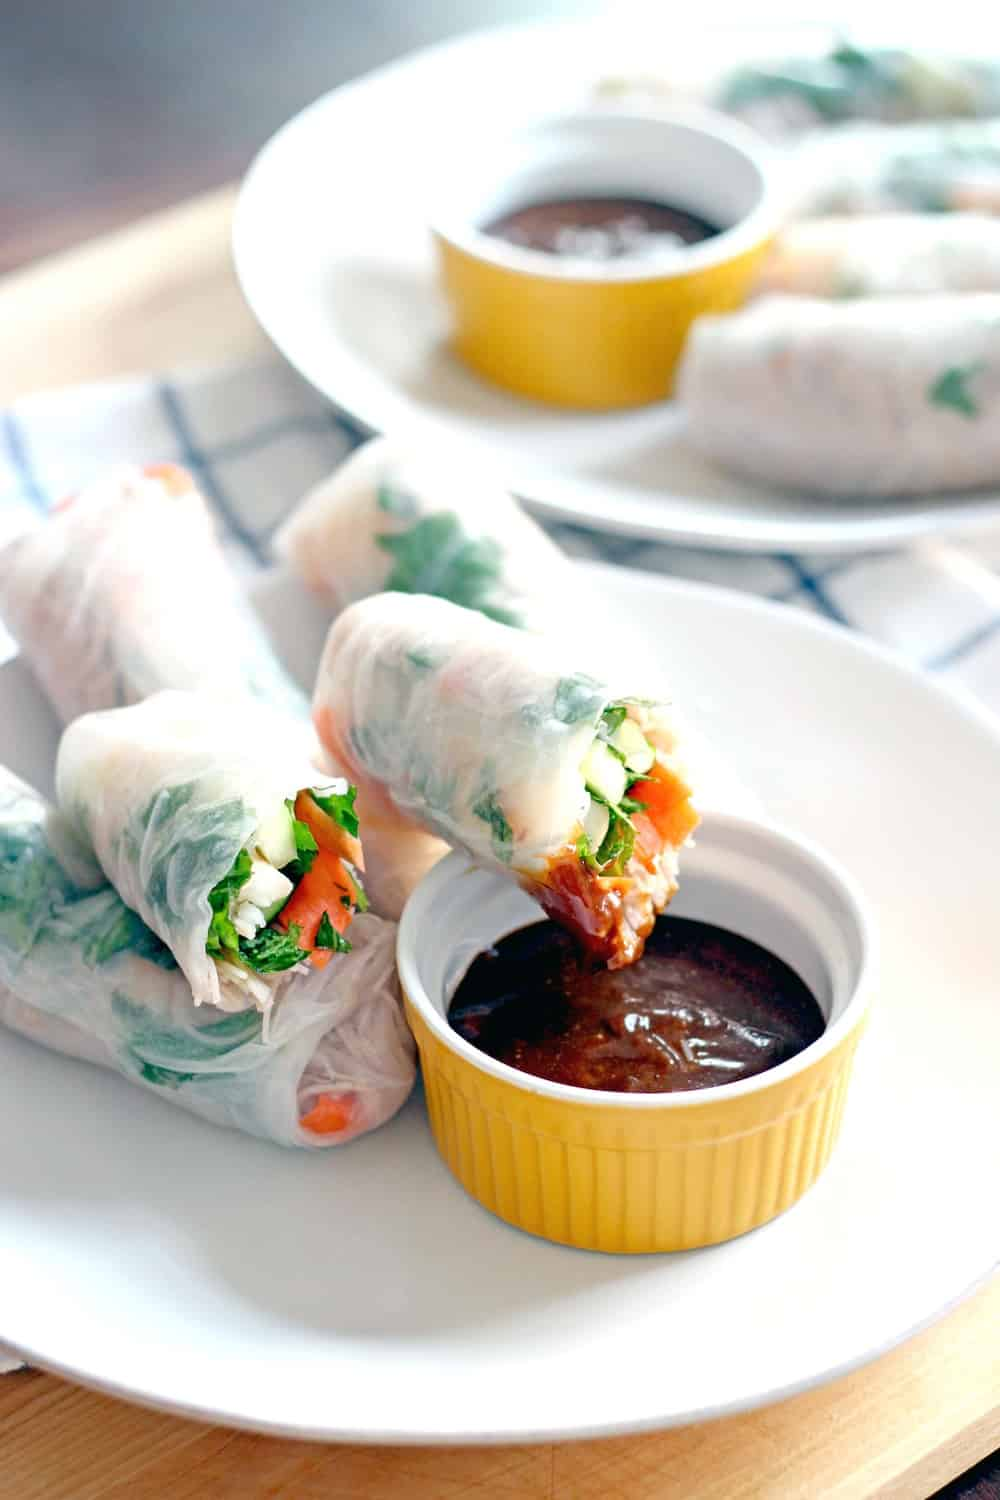 A white plate holding a few fresh spring rolls and a ramekin of dark brown sauce. One of the spring rolls is perched on the edge of the ramekin and partially dipped in sauce.